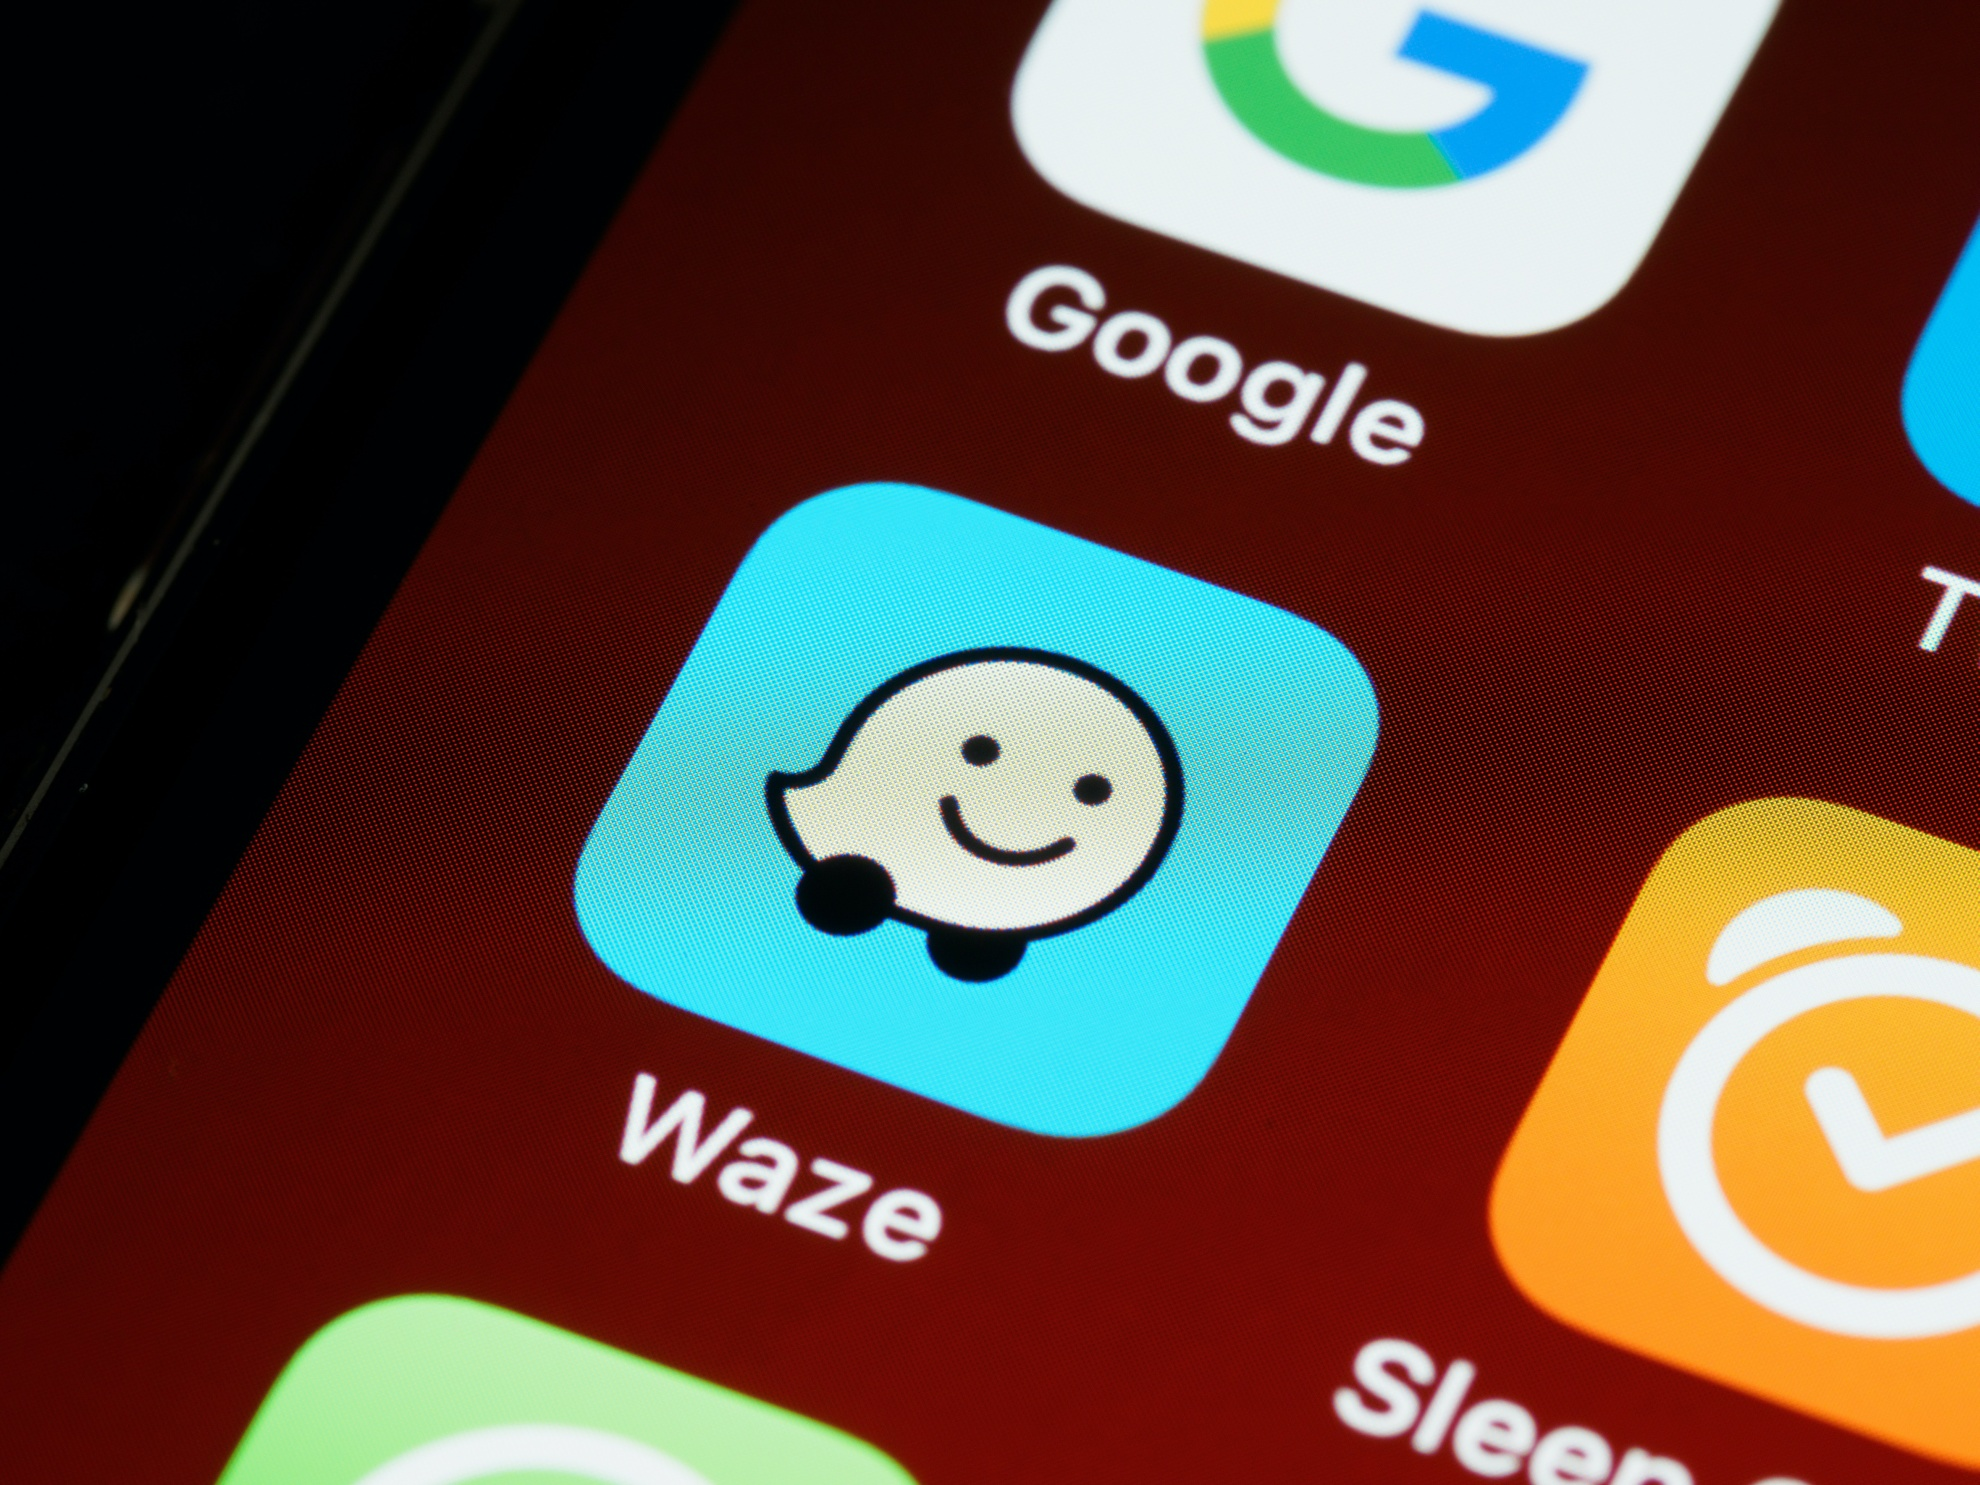 Security Researcher Finds Waze API Vulnerability Allowing Him to Track Users and Gather Data